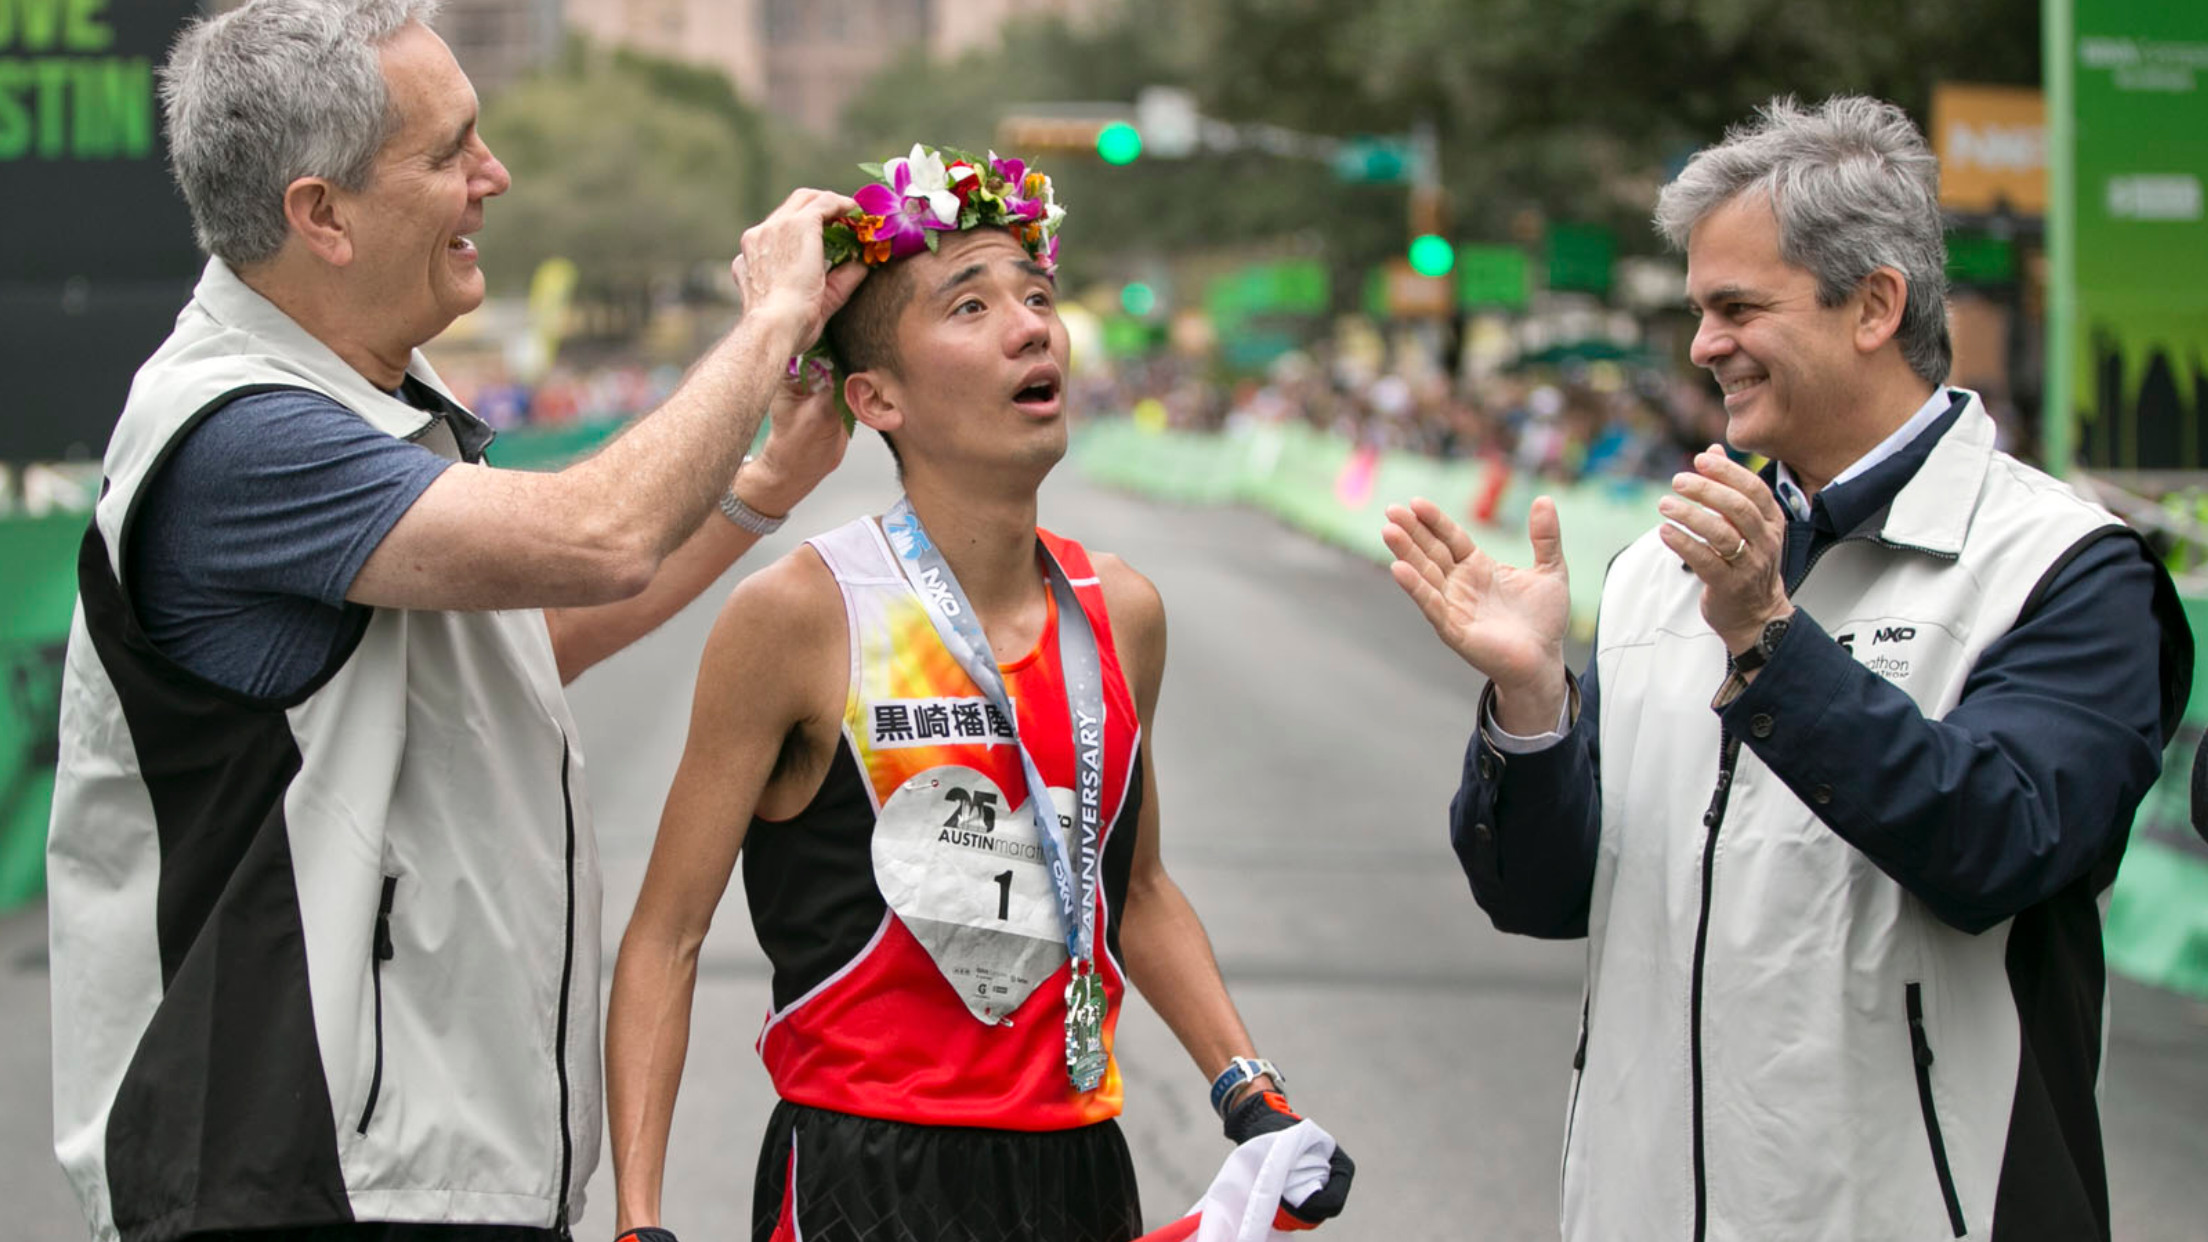 Austin Marathon Welcomes Elite Japanese Runners